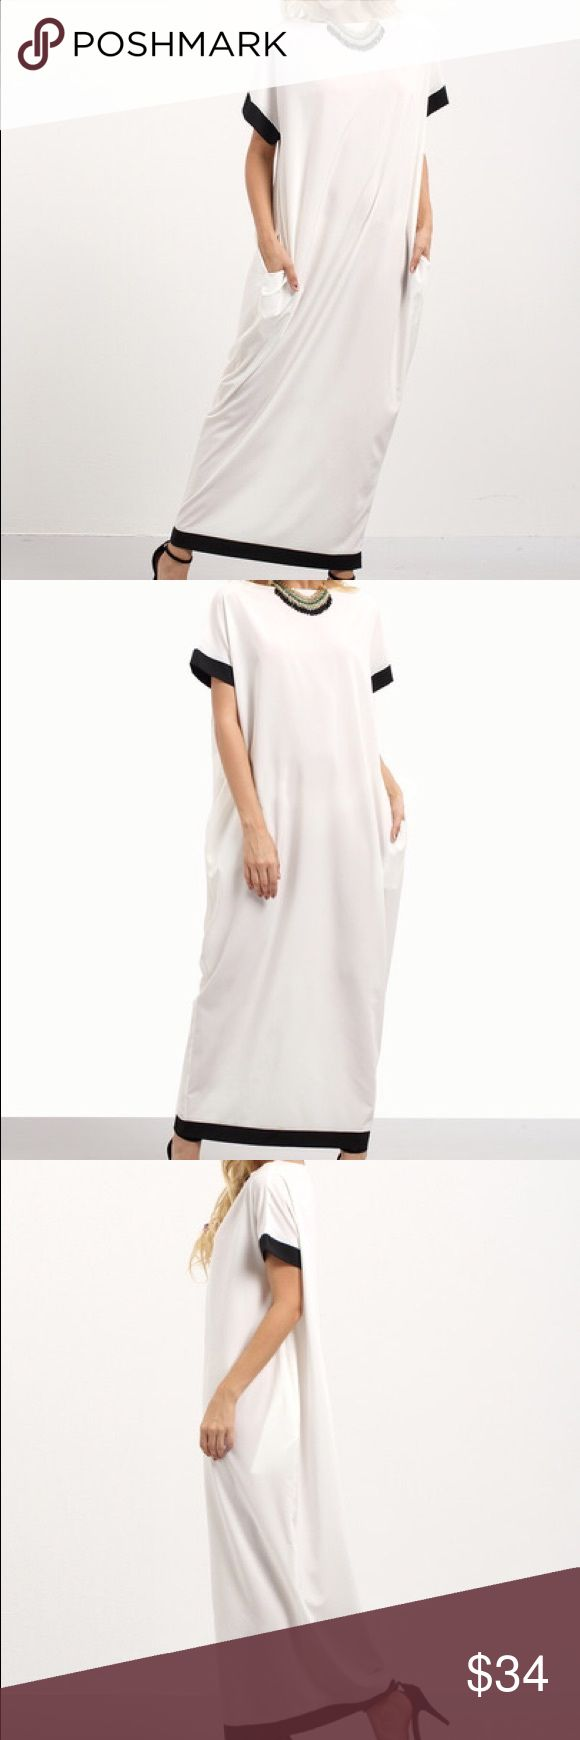 """Light and flowy contrast maxi White with Black Hem and Arm Trim Contrast Shift Maxi Dress                                                                                     This beauty is light and perfect for the season! It has pockets and Fabric has no stretch but is super flowy! Material : 100% Polyester Bust: S:47"""" M:51"""" L:55"""" Length: S:56"""" M:57"""" L:58"""" Sleeve Length: S:10.5"""" M:11.5"""" L:12.5"""" Dresses Maxi"""